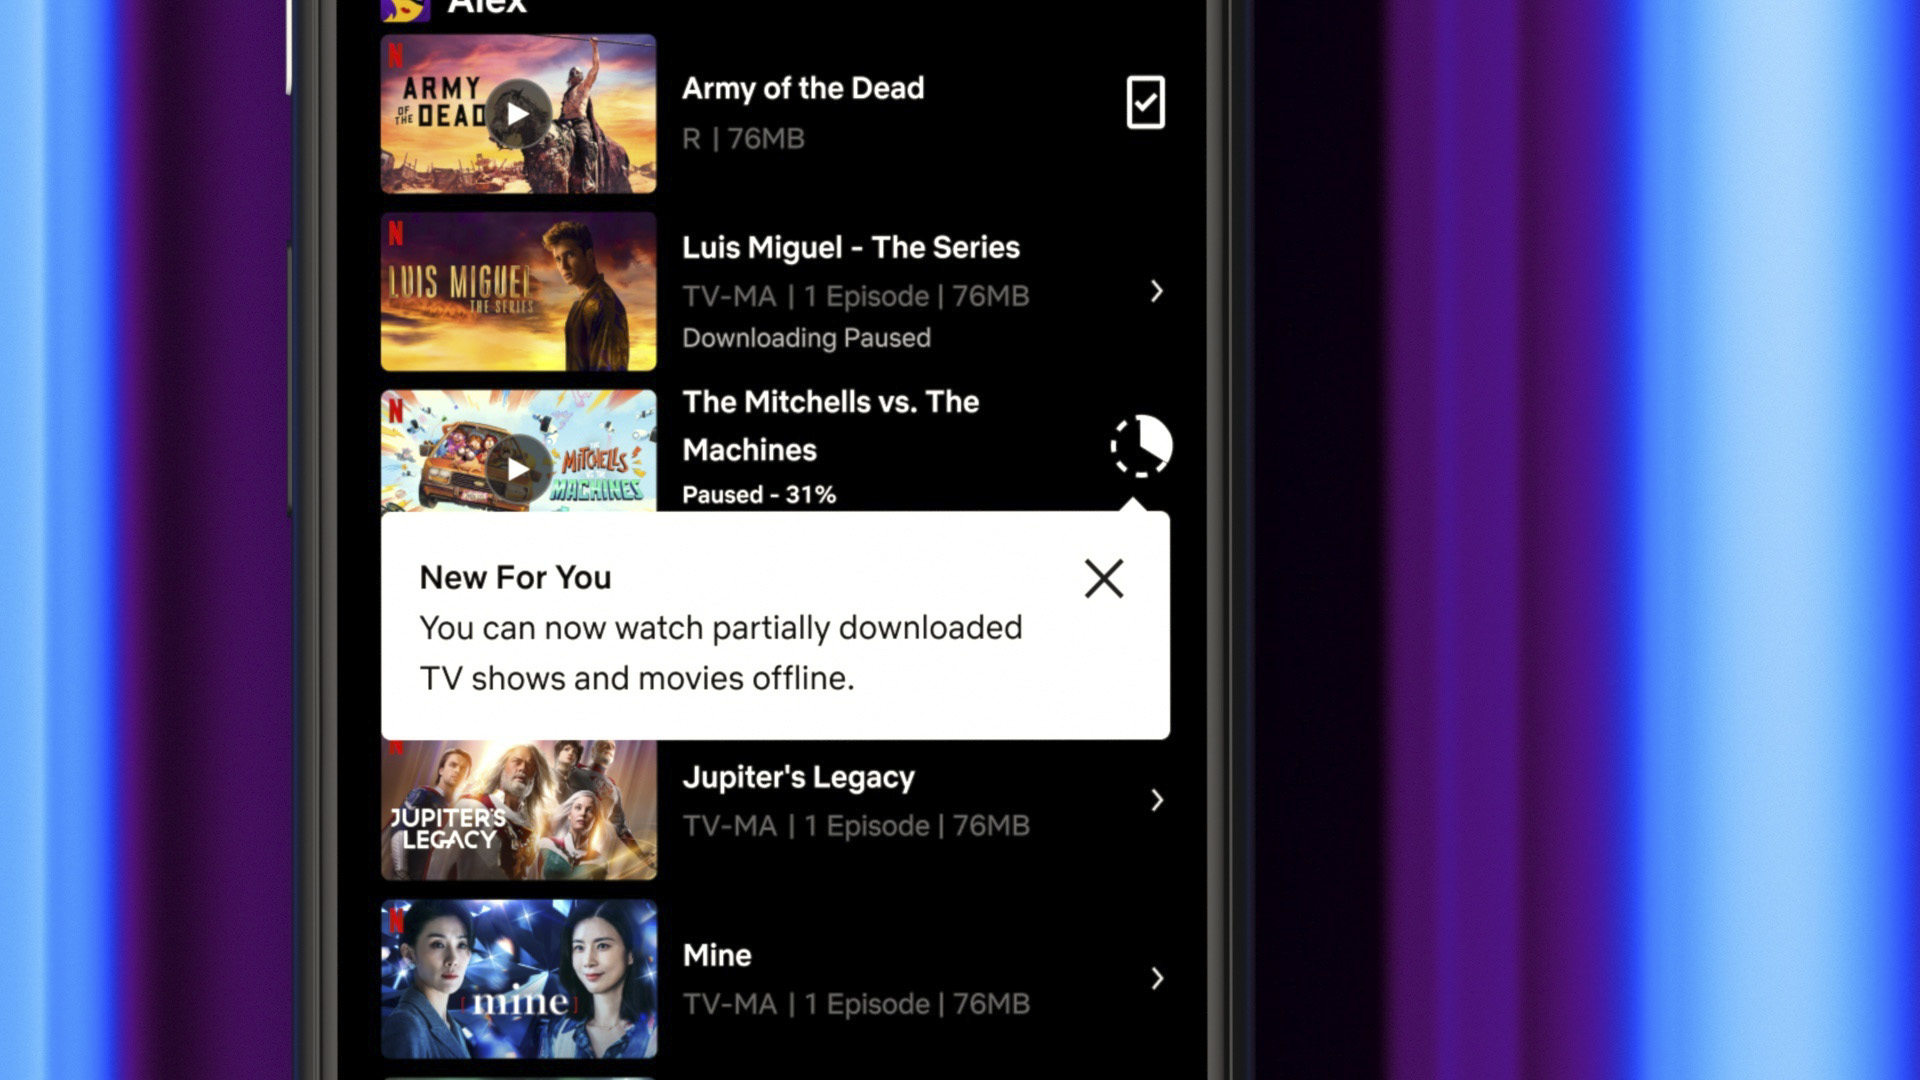 Netflix Rolls Out Partial Downloads Feature For Android Users